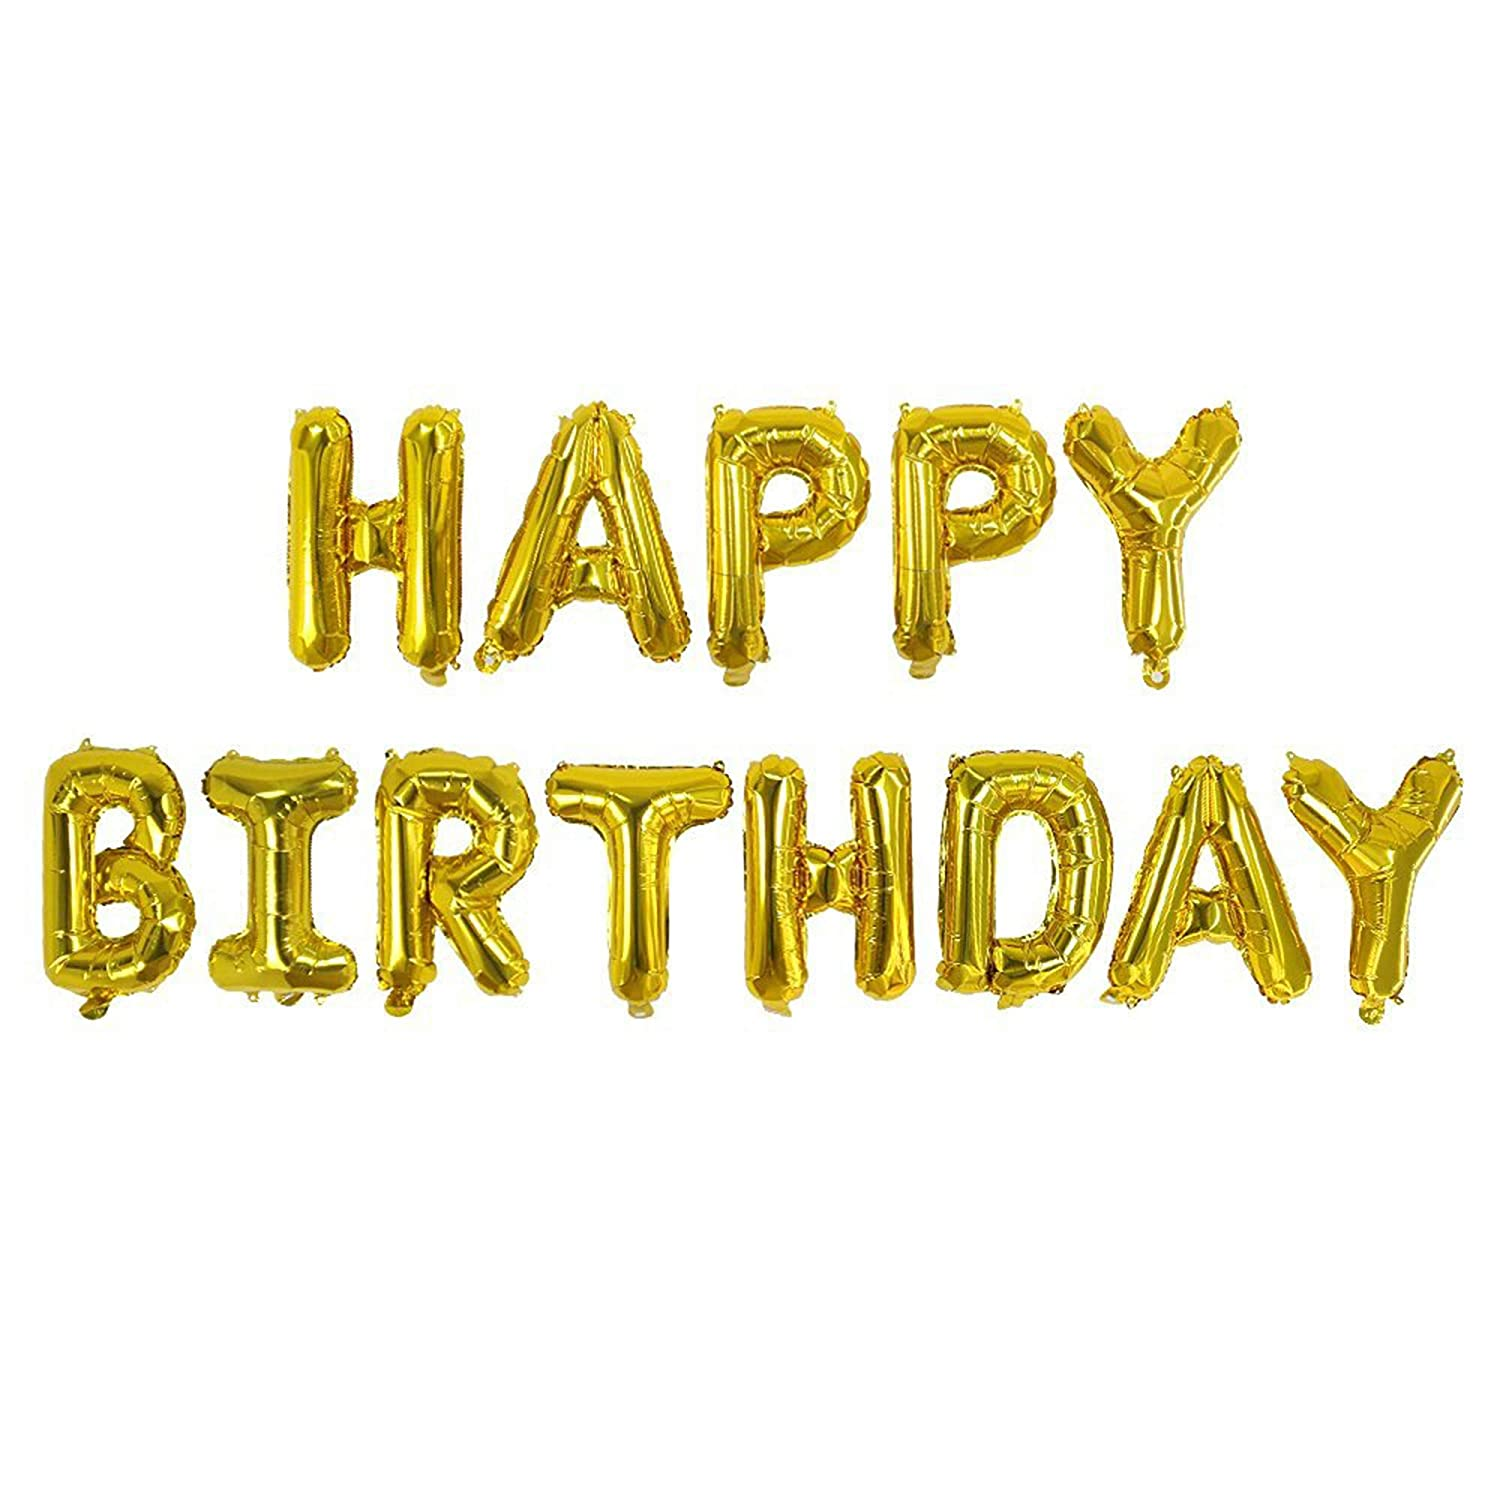 0a18975b86cb REDSTAR Happy Birthday Balloons - Self Inflating 16 Large Foil Banner  Balloons - Choose Colour (